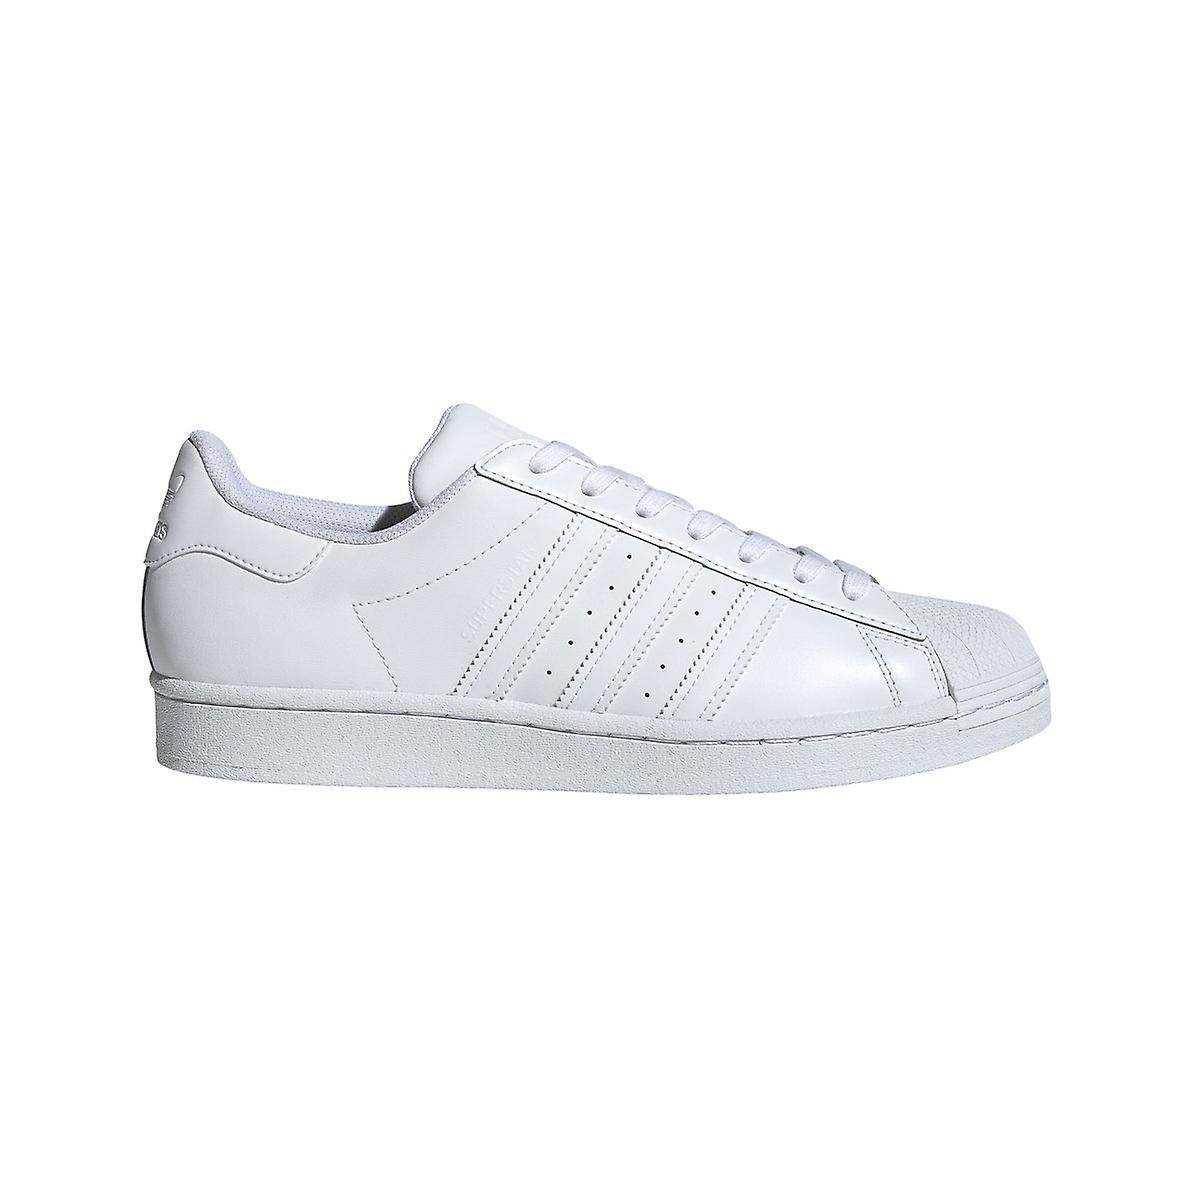 Adidas Basket mode Adidas Originals Superstar Blanc 43 1/3